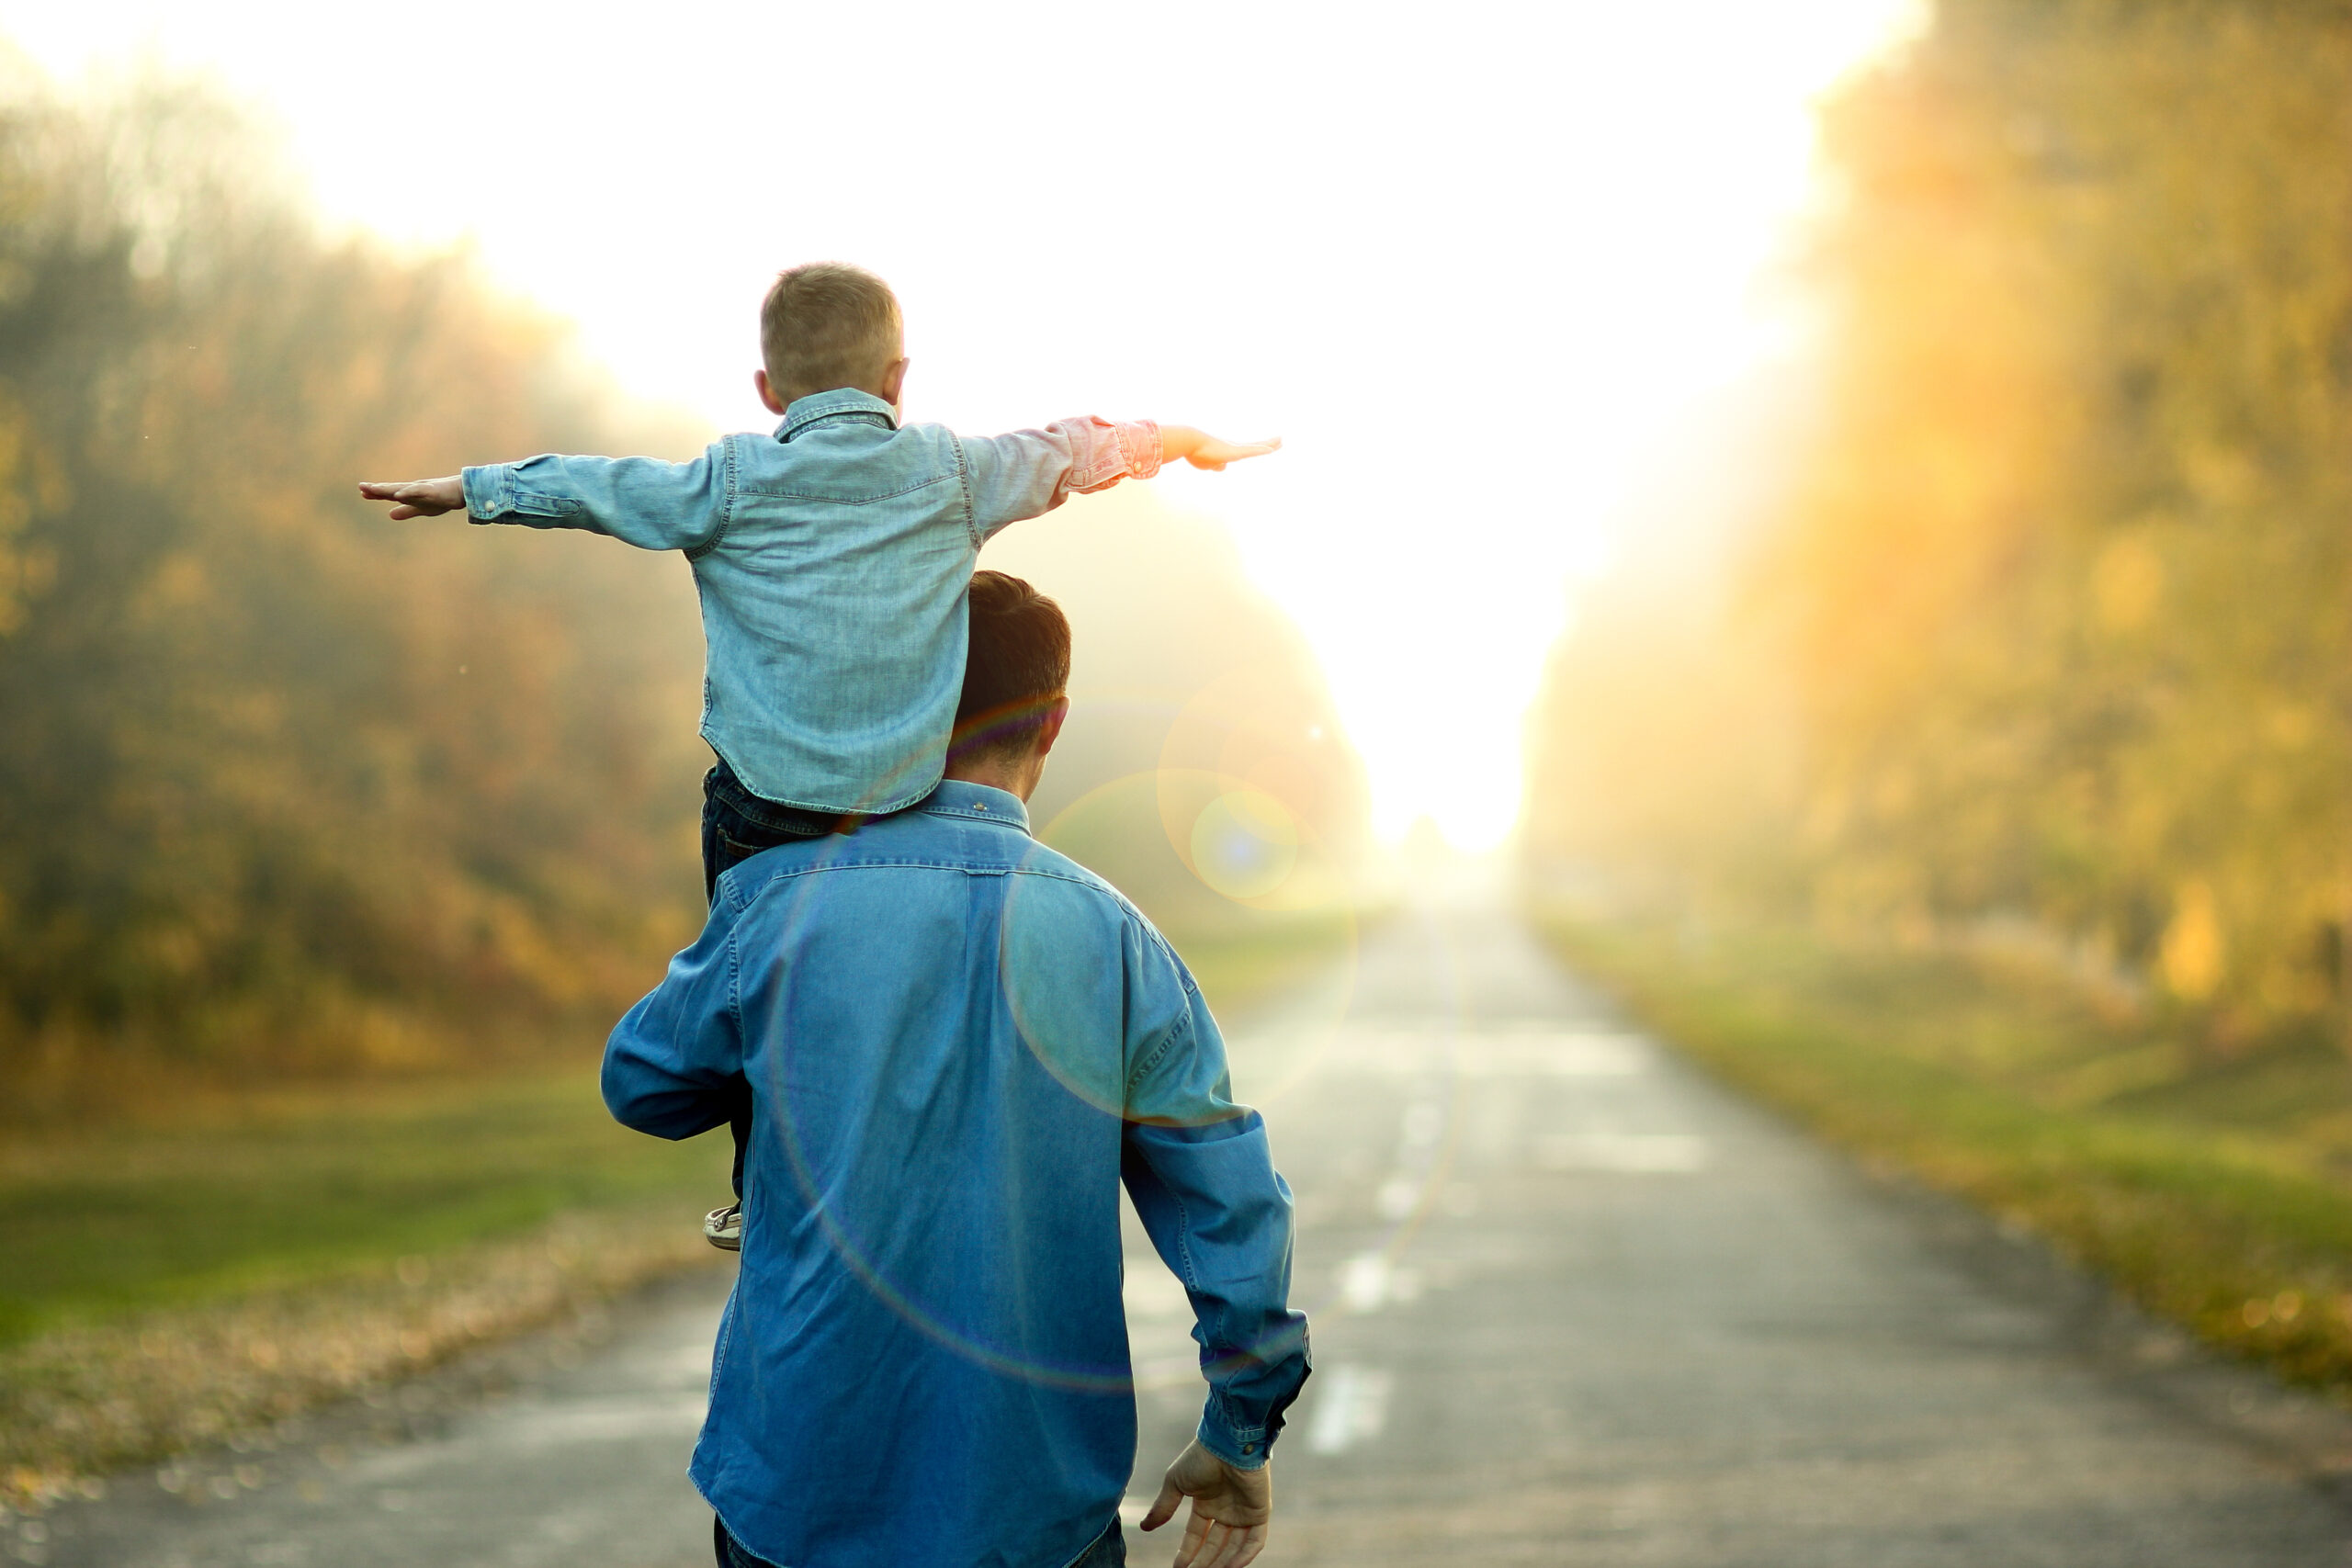 Man holding a child on his shoulder. The child has both arms stretched out as they walk down a road towards a setting sun